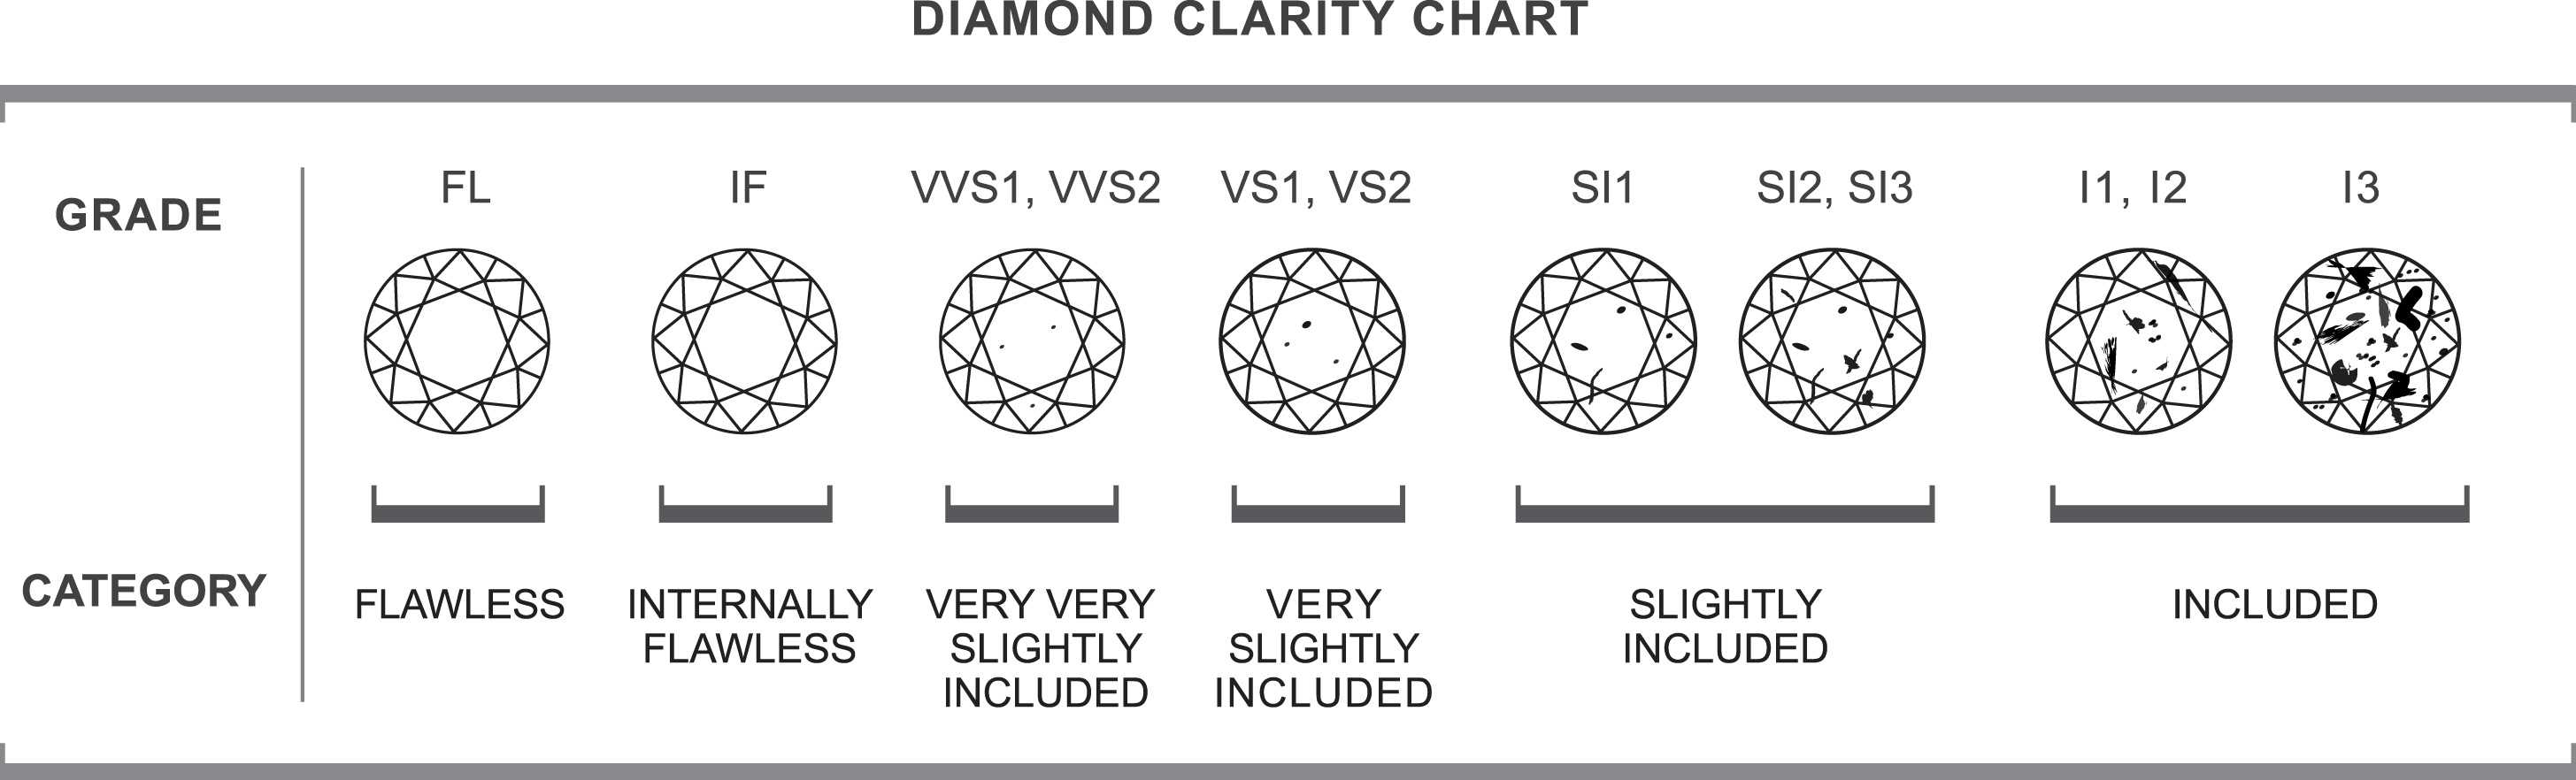 What Determines A Diamond's Clarity Grade